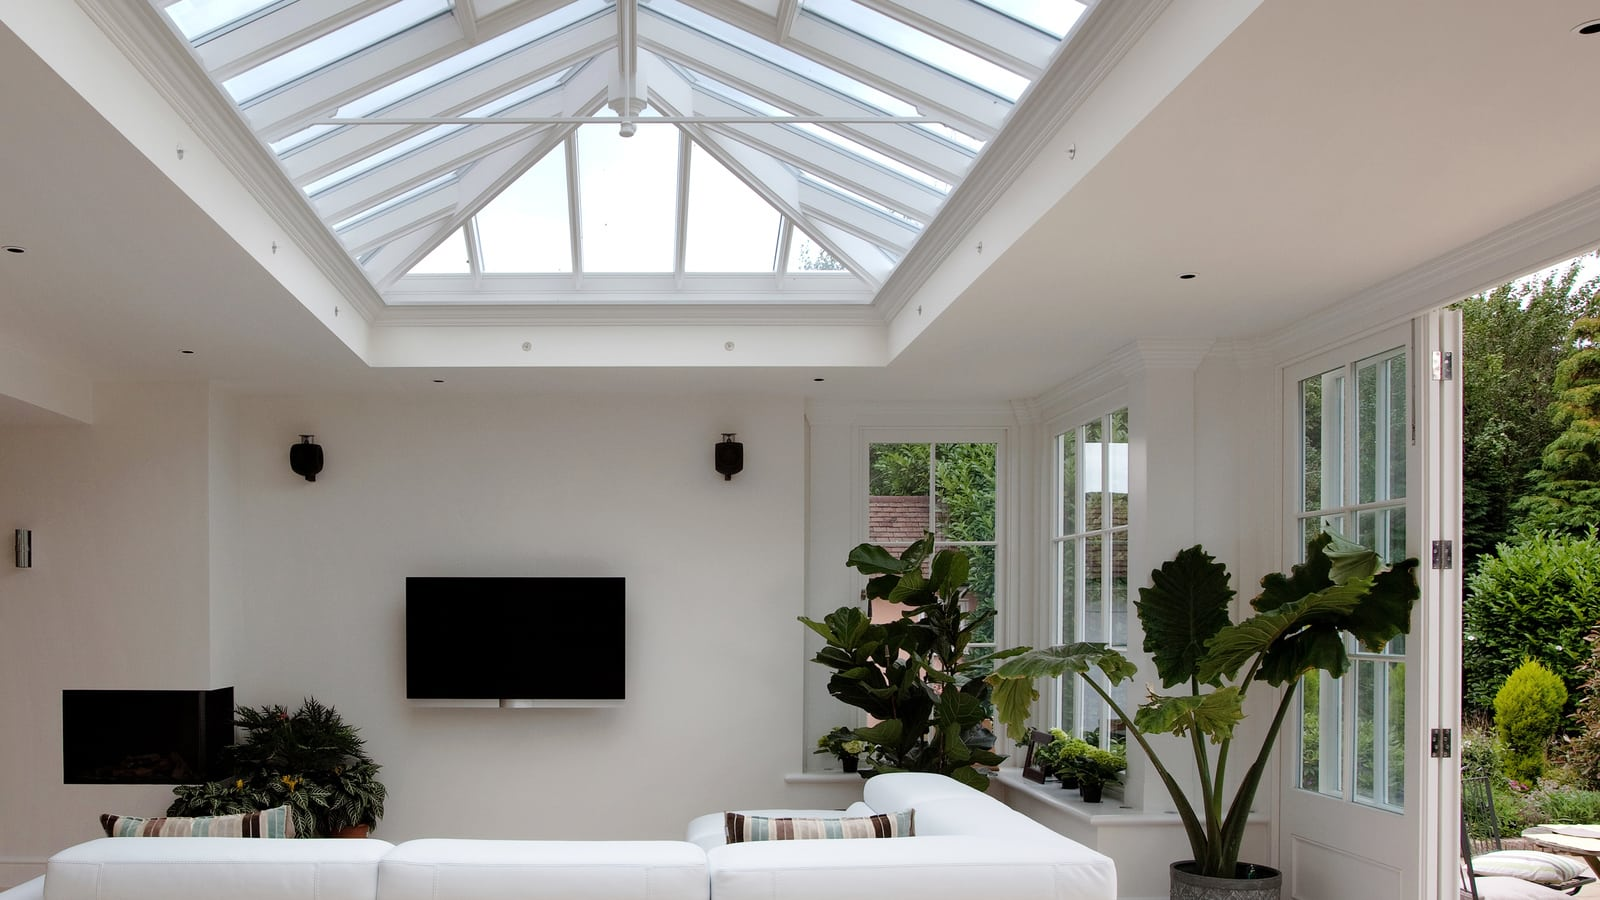 Light and welcoming seating area inside orangery beneath large roof lantern